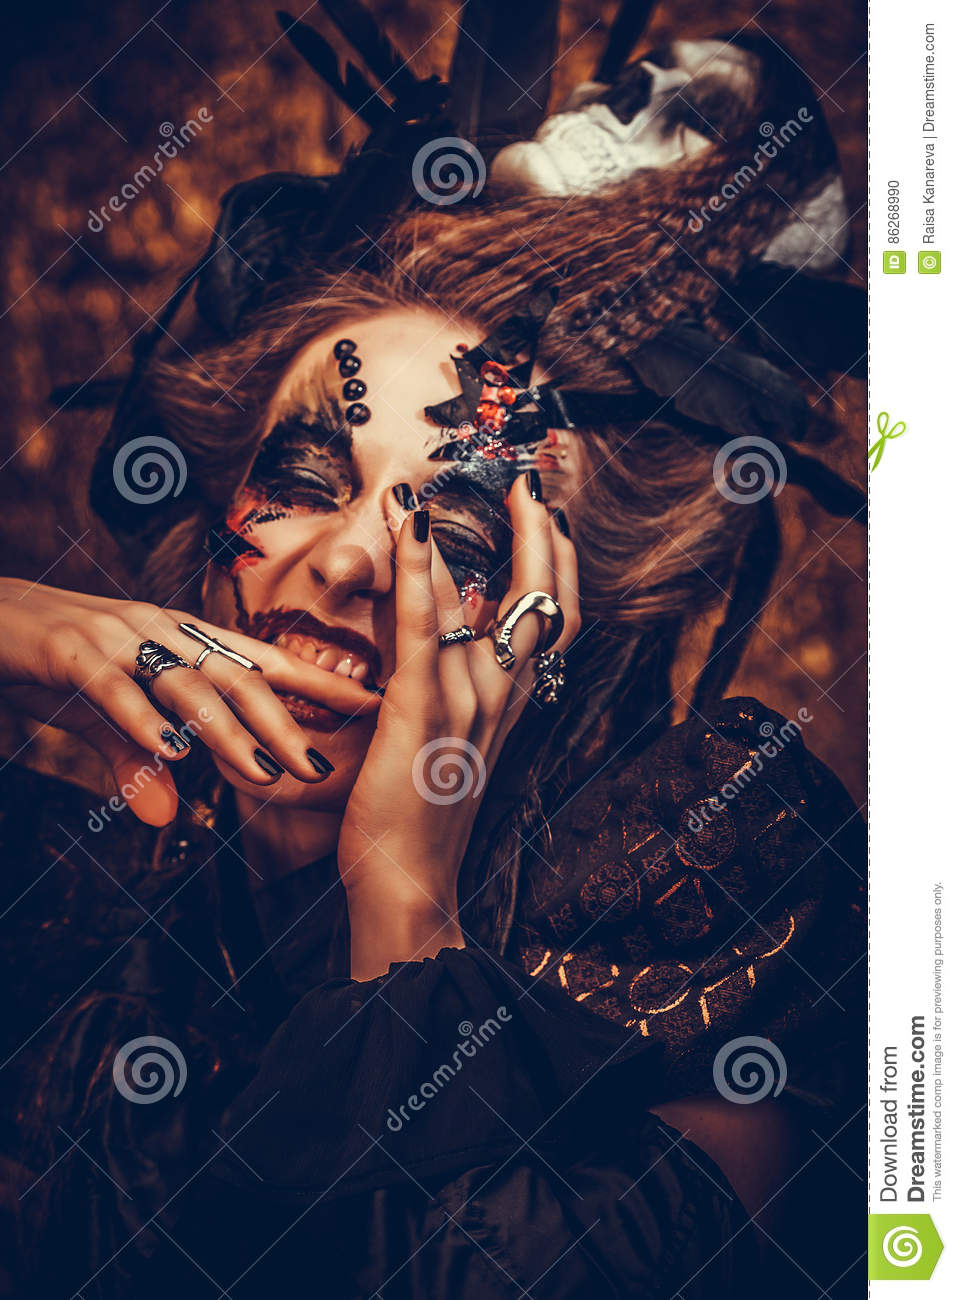 Young woman wearing dark costume. Bright make up and smoke- halloween theme.